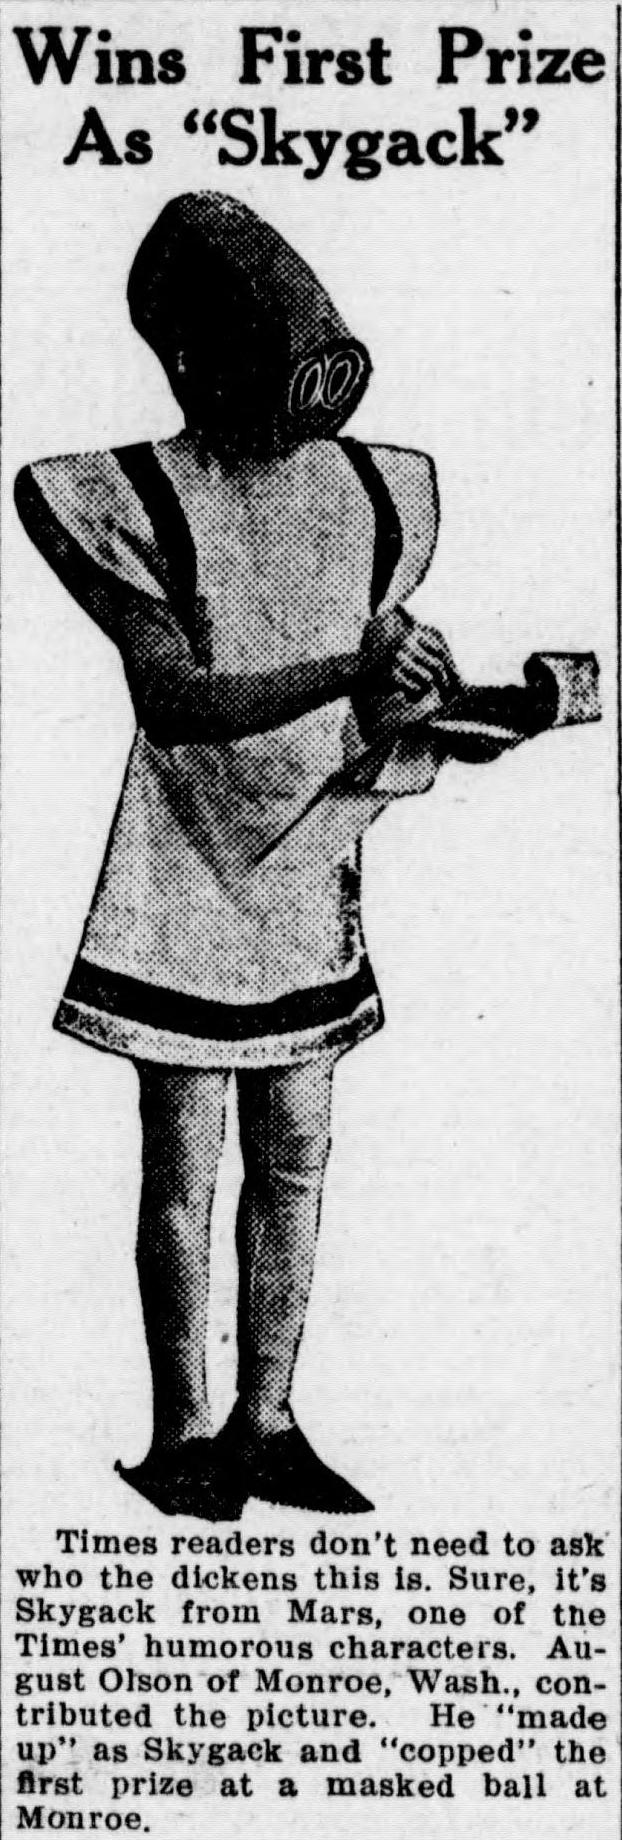 Masquerade_attendee_dressed_as_-Mister_Skygack,_from_Mars-_(1912)